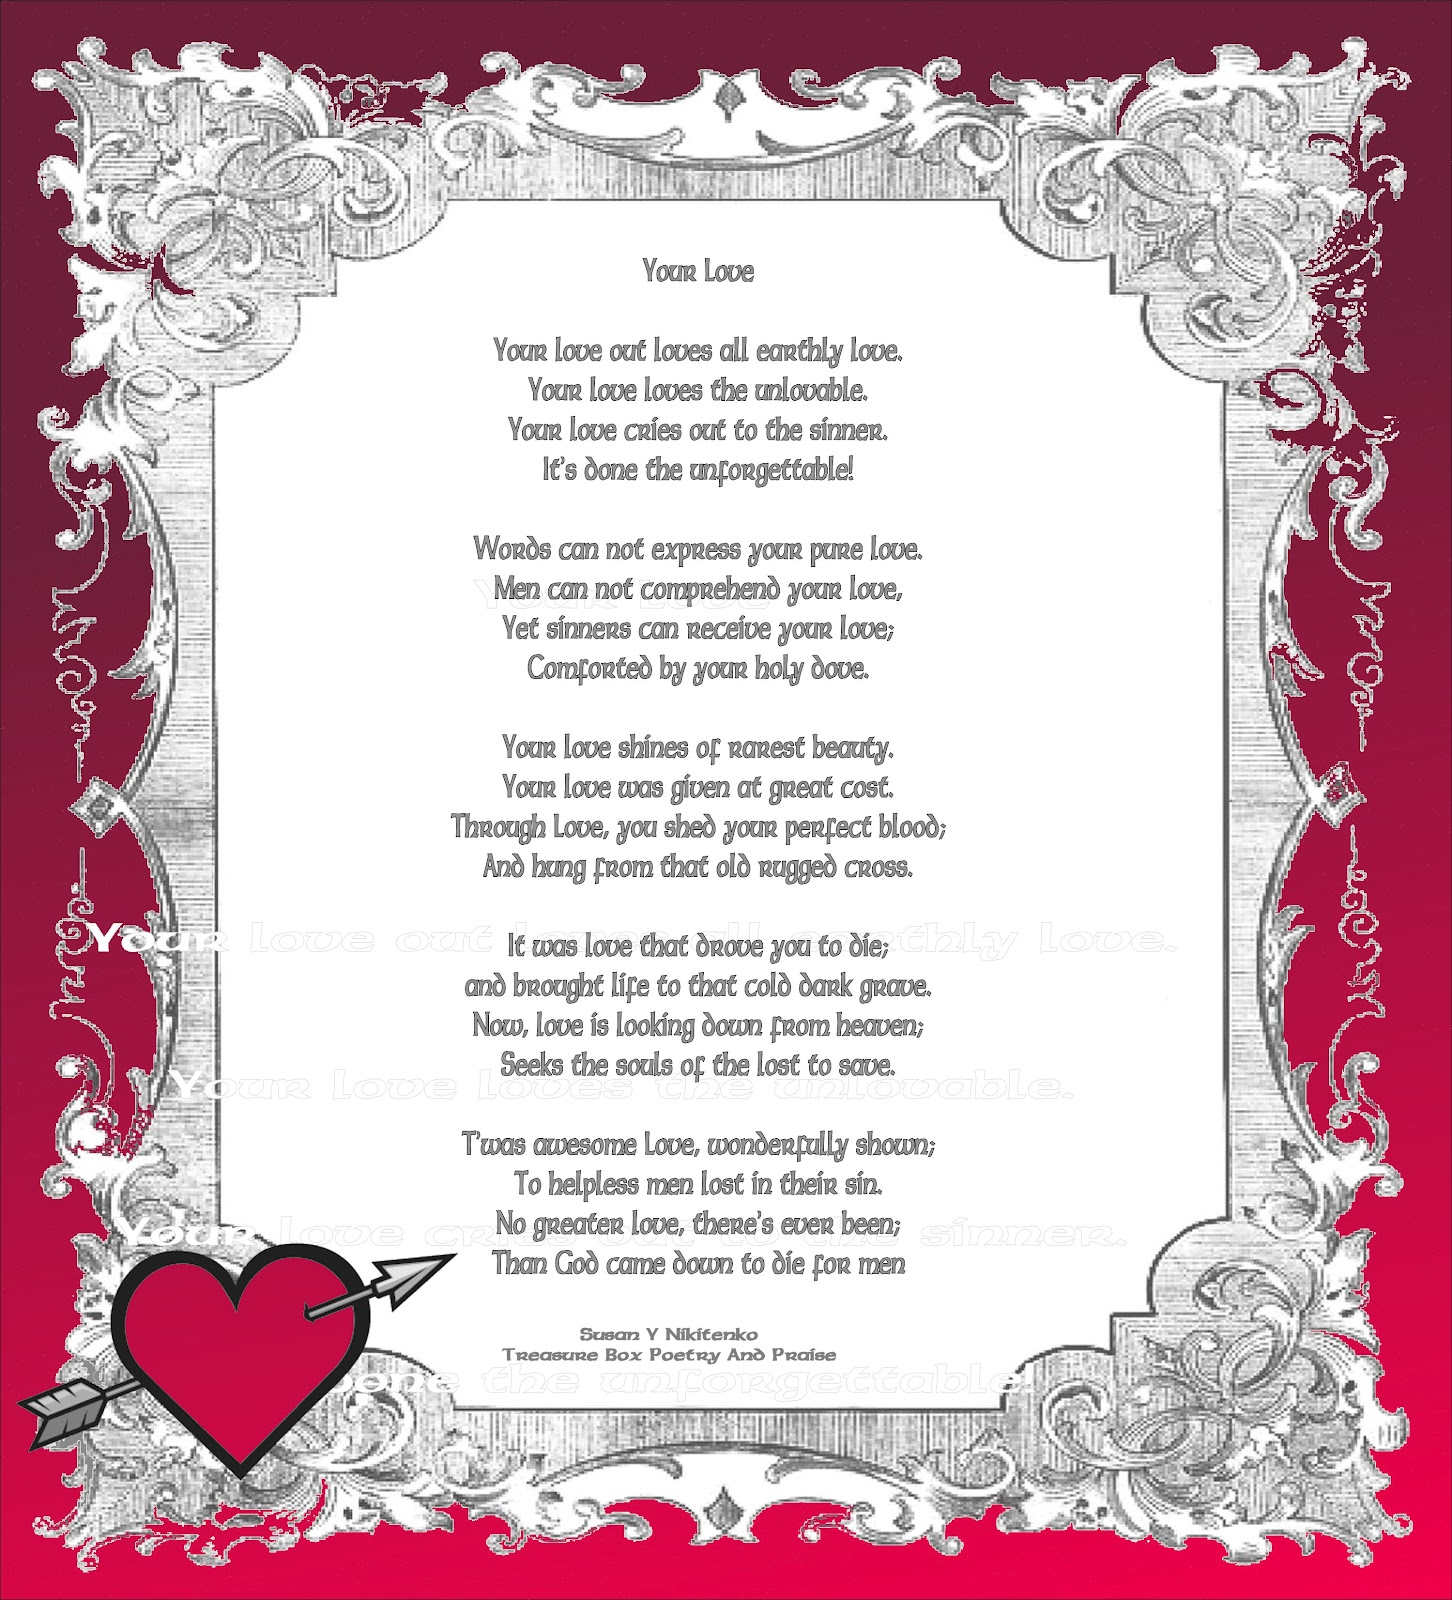 valentines day religious poems valentine traditions - Christian Valentine Poems